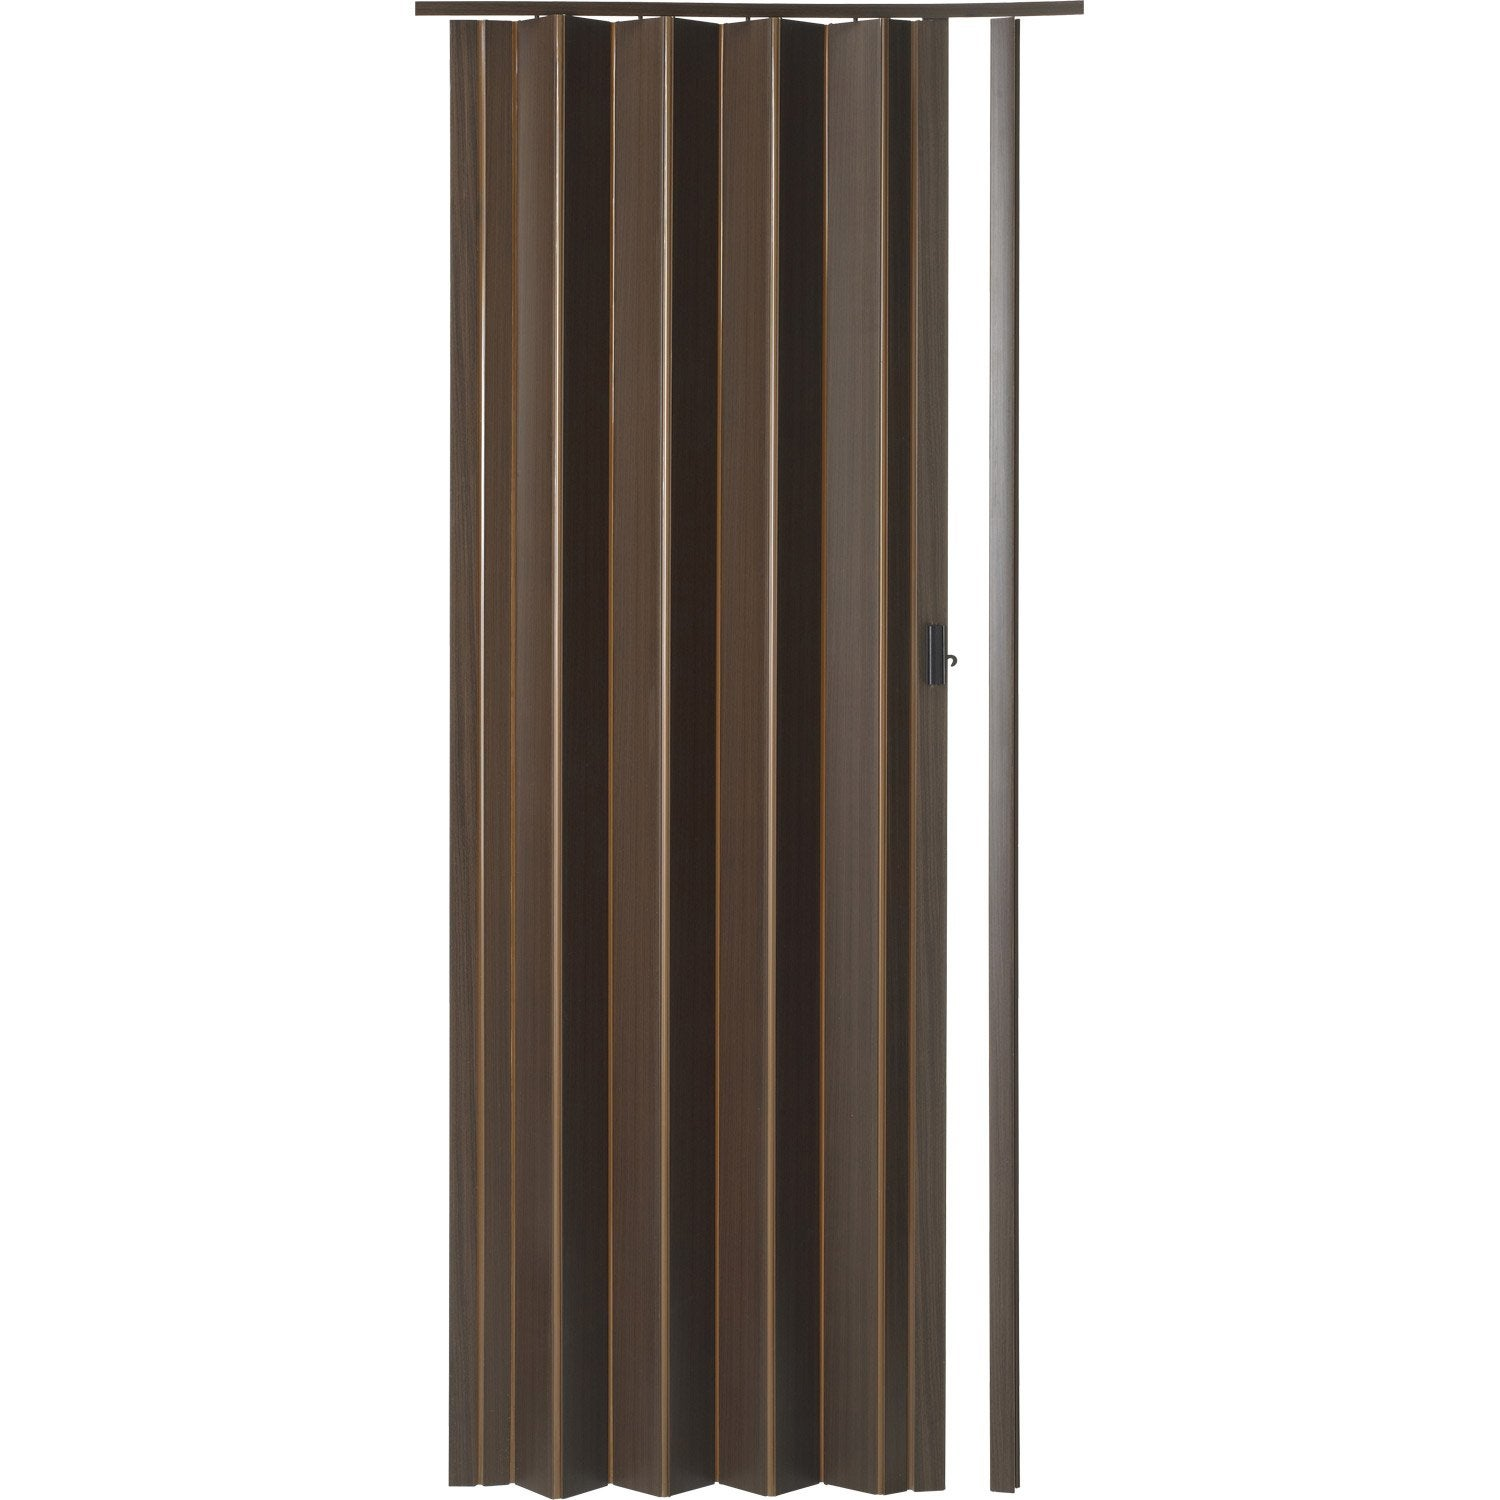 Porte accordeon sur mesure for Porte interieure pliante